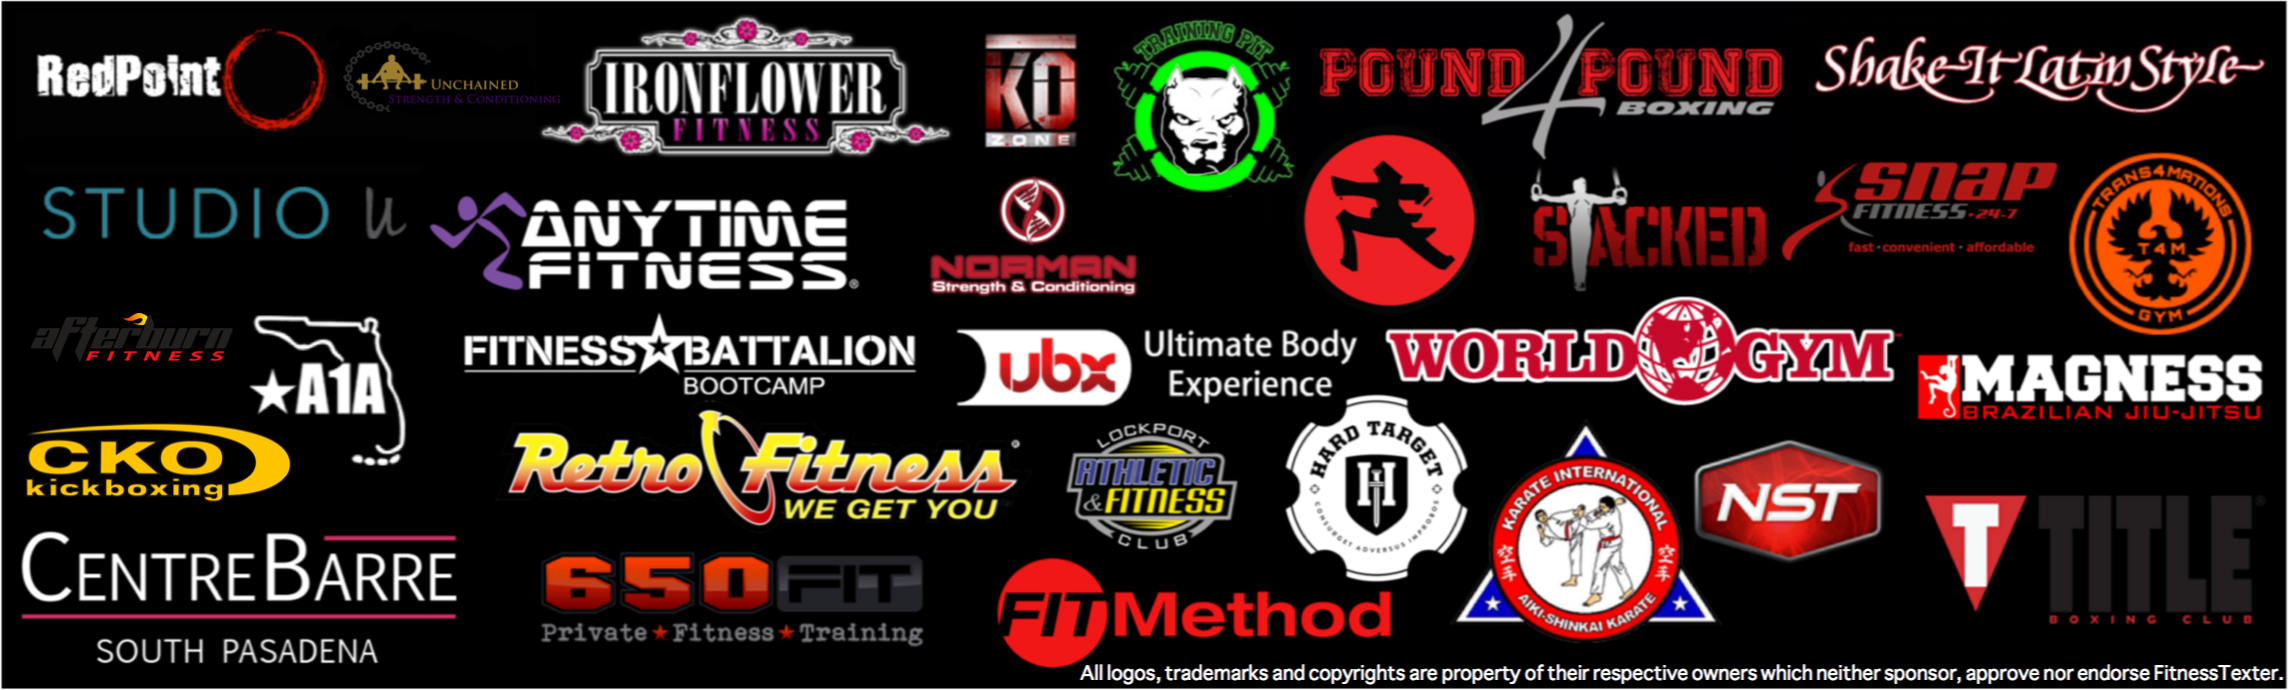 FitnessTexter-Clients-Image